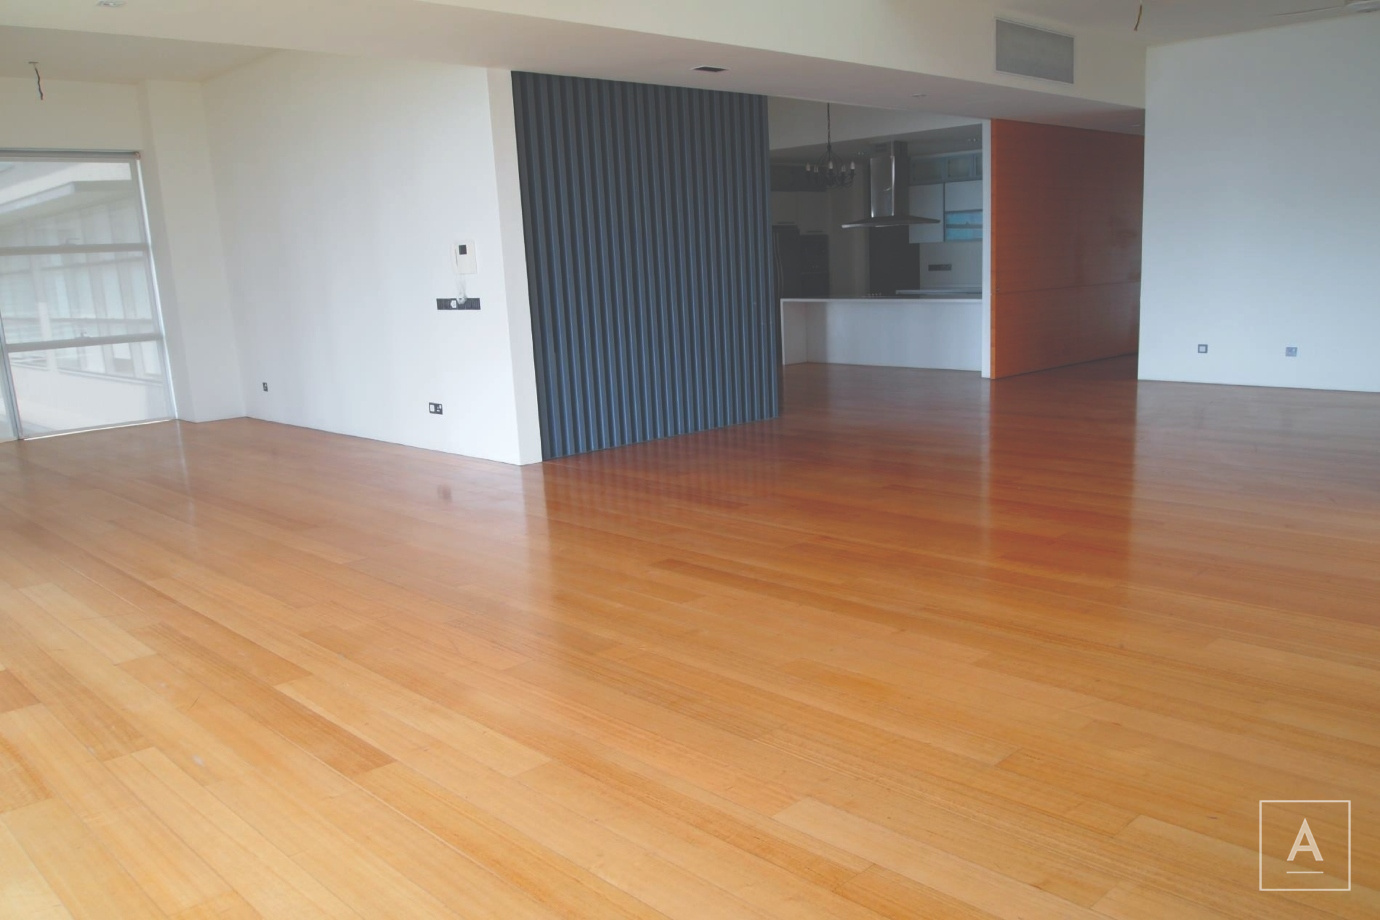 Park Seven, KLCC,Kuala Lumpur, 5 Bedrooms Bedrooms, ,5 BathroomsBathrooms,Condominium / Serviced Residence,For Sale,Park Seven,Jalan Kia Peng,1348